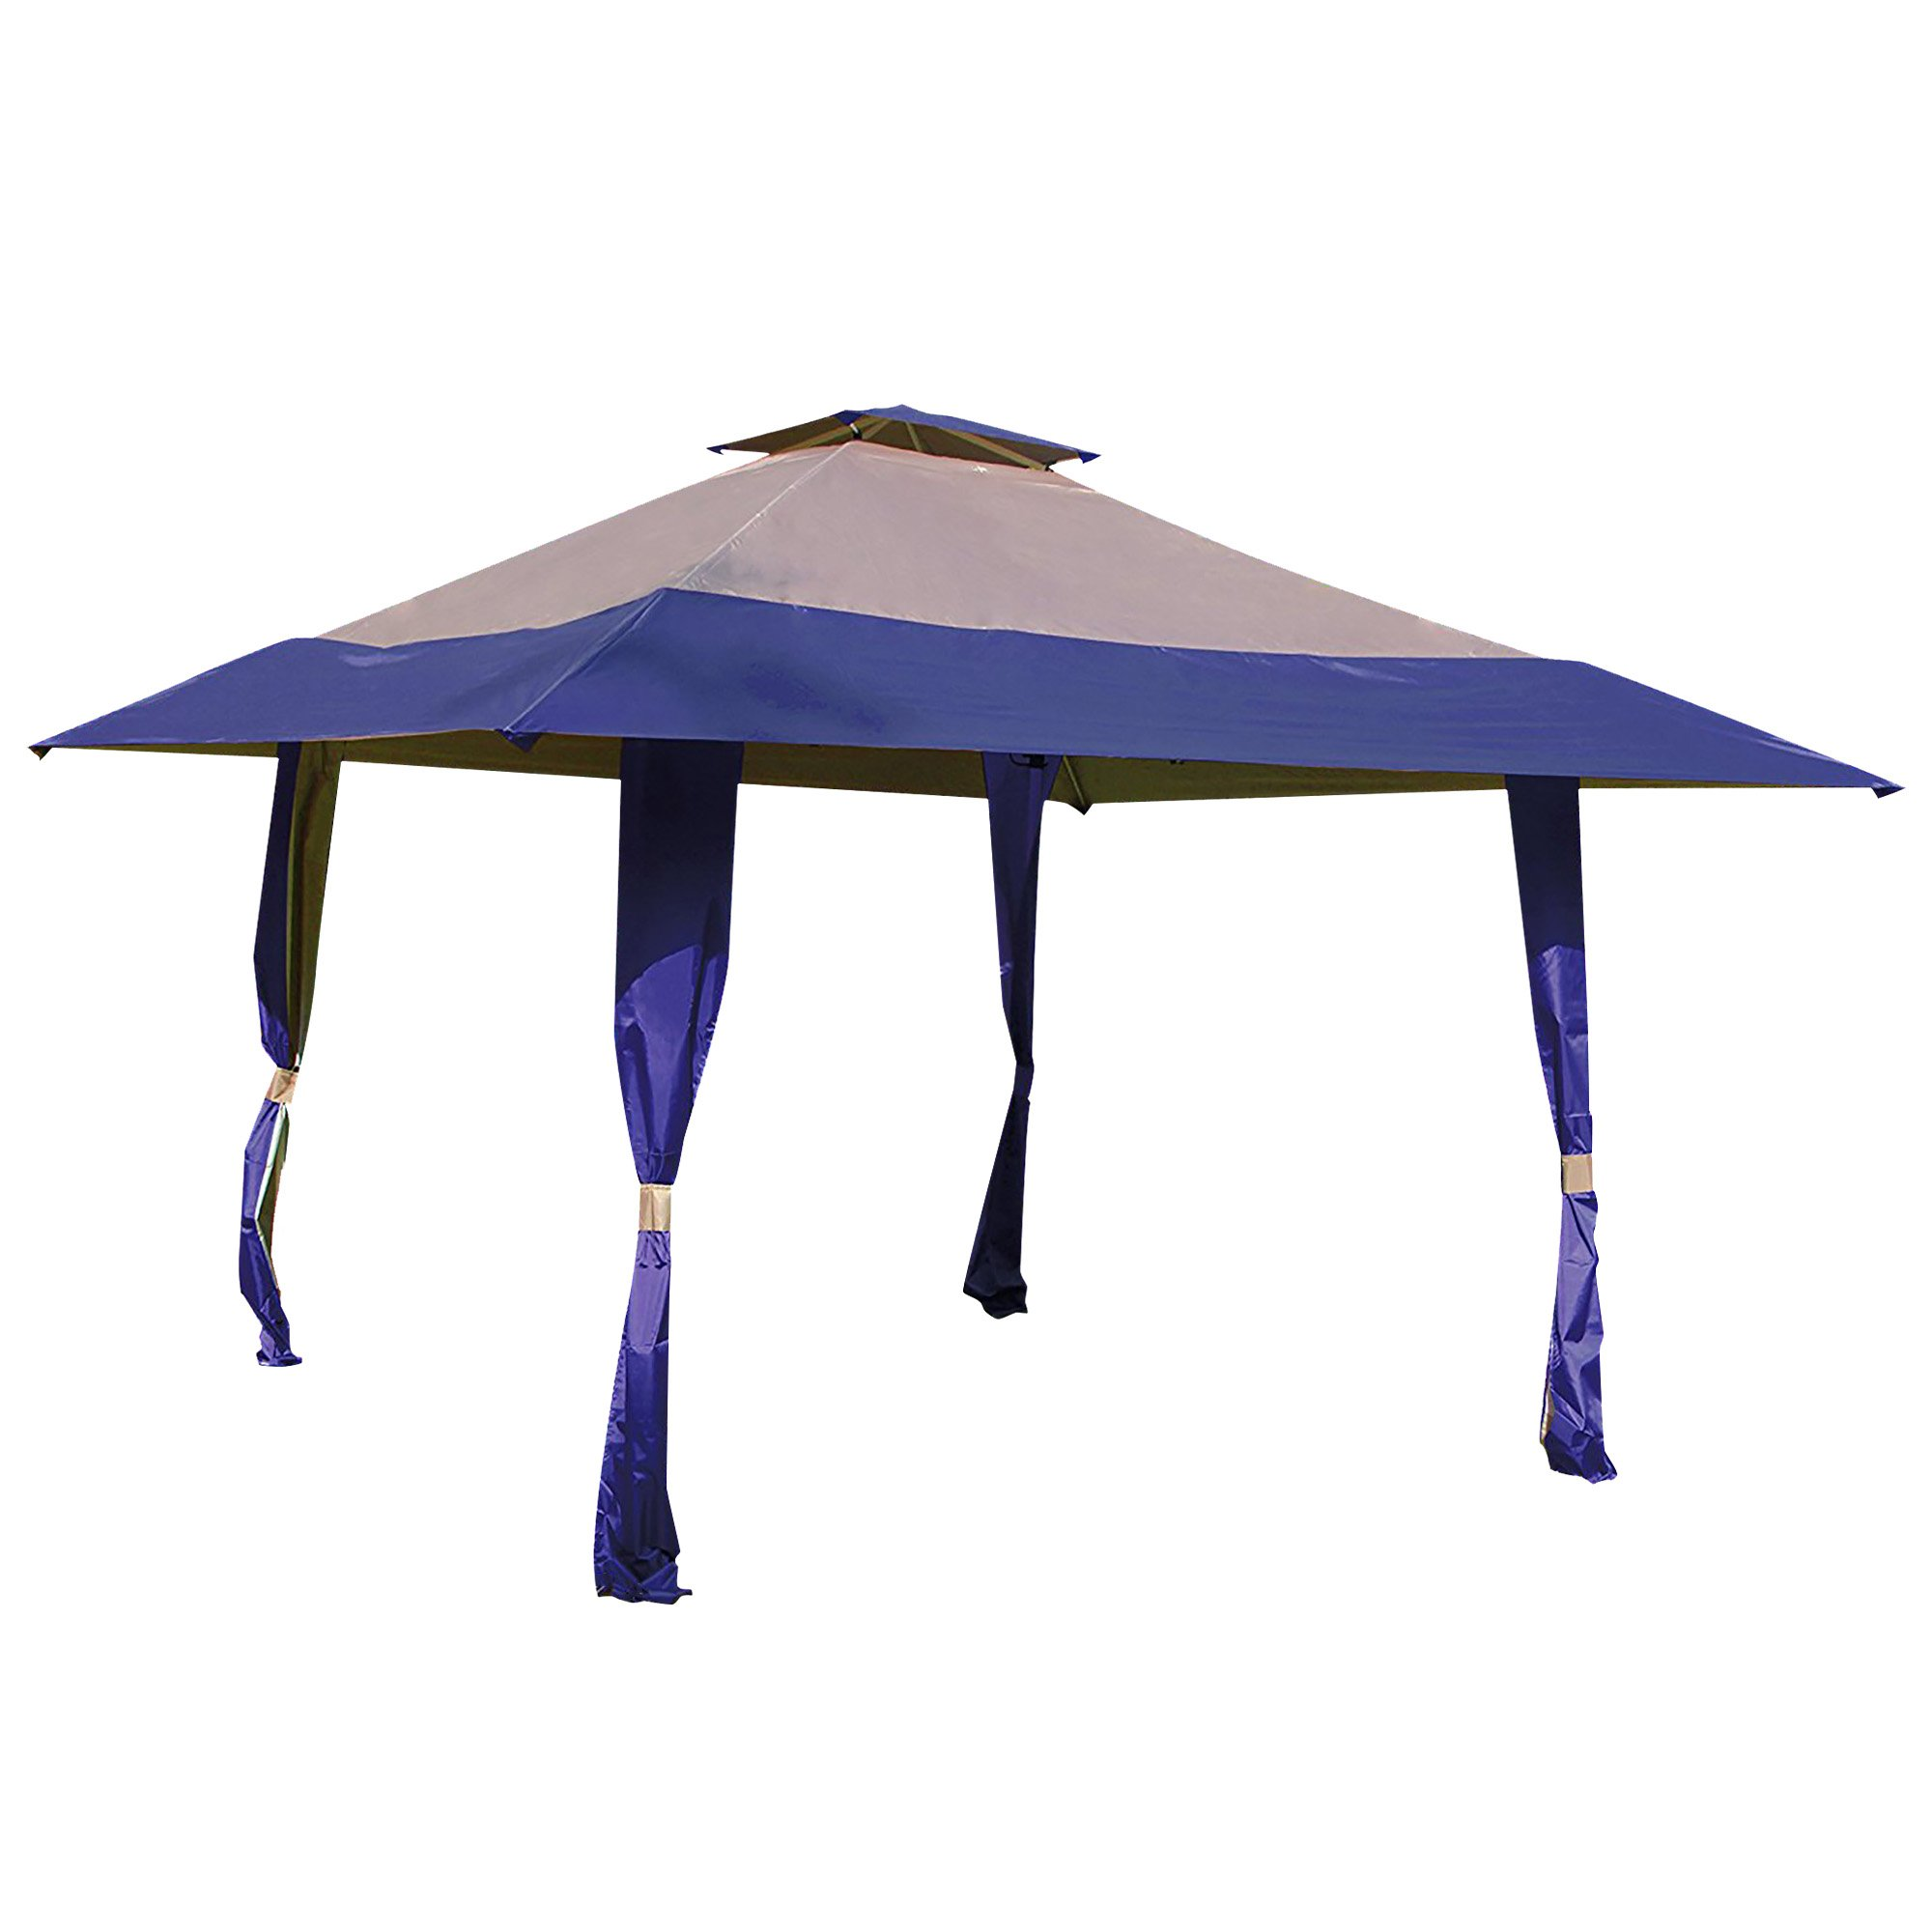 Cloud Mountain 13' x 13' Pop Up Canopy Outdoor Yard Patio Double Roof Easy Set Up Canopy Tent for Party Event, Royal Blue Tan